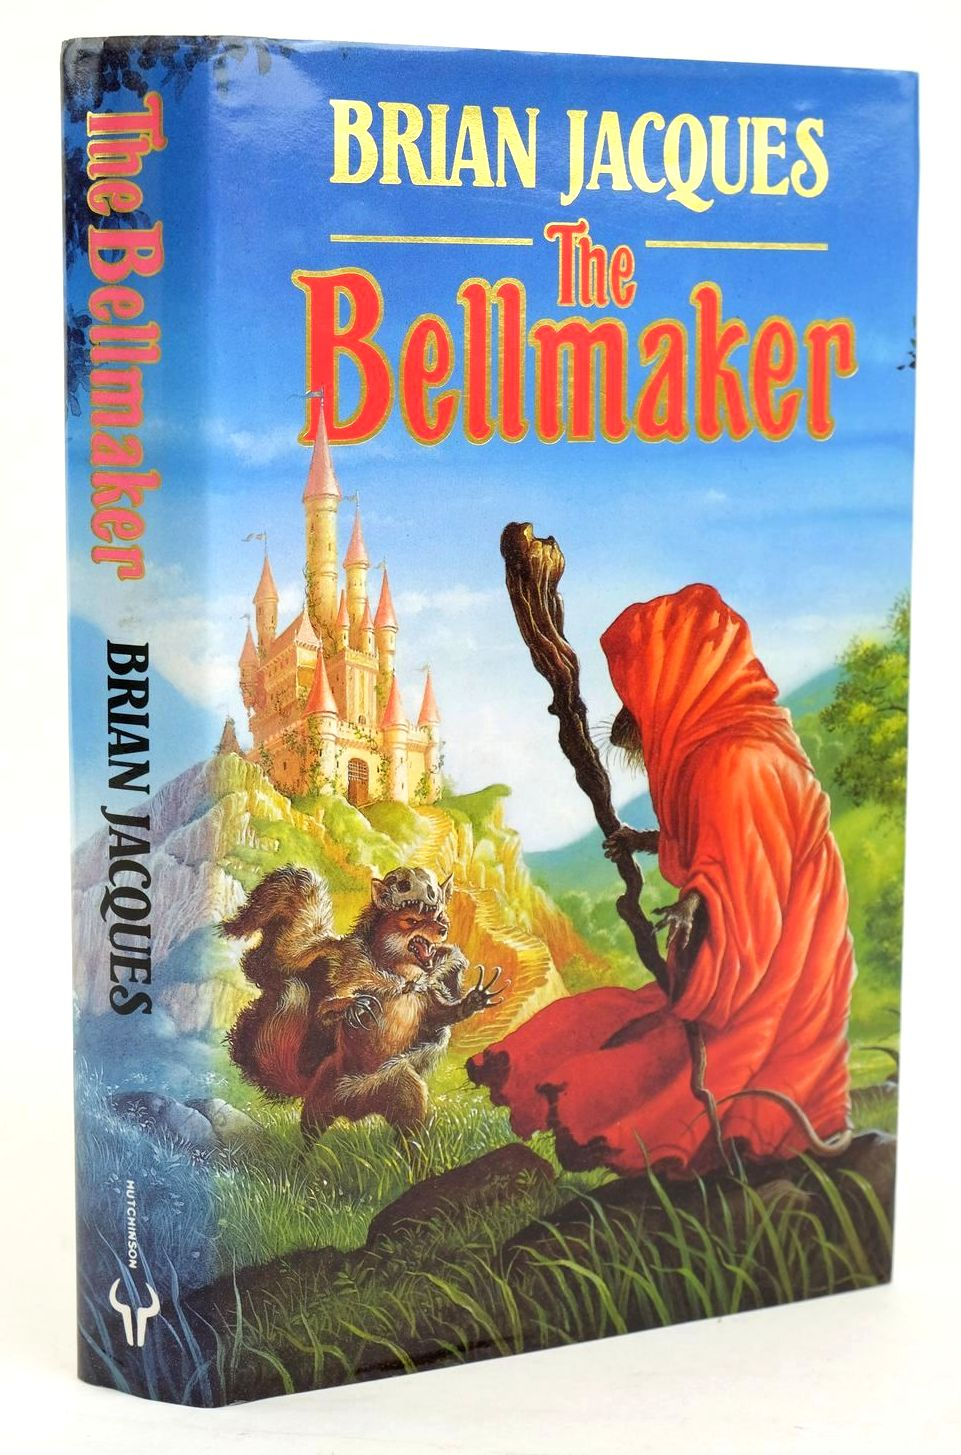 Photo of THE BELLMAKER written by Jacques, Brian illustrated by Curless, Allan published by Hutchinson (STOCK CODE: 1319405)  for sale by Stella & Rose's Books